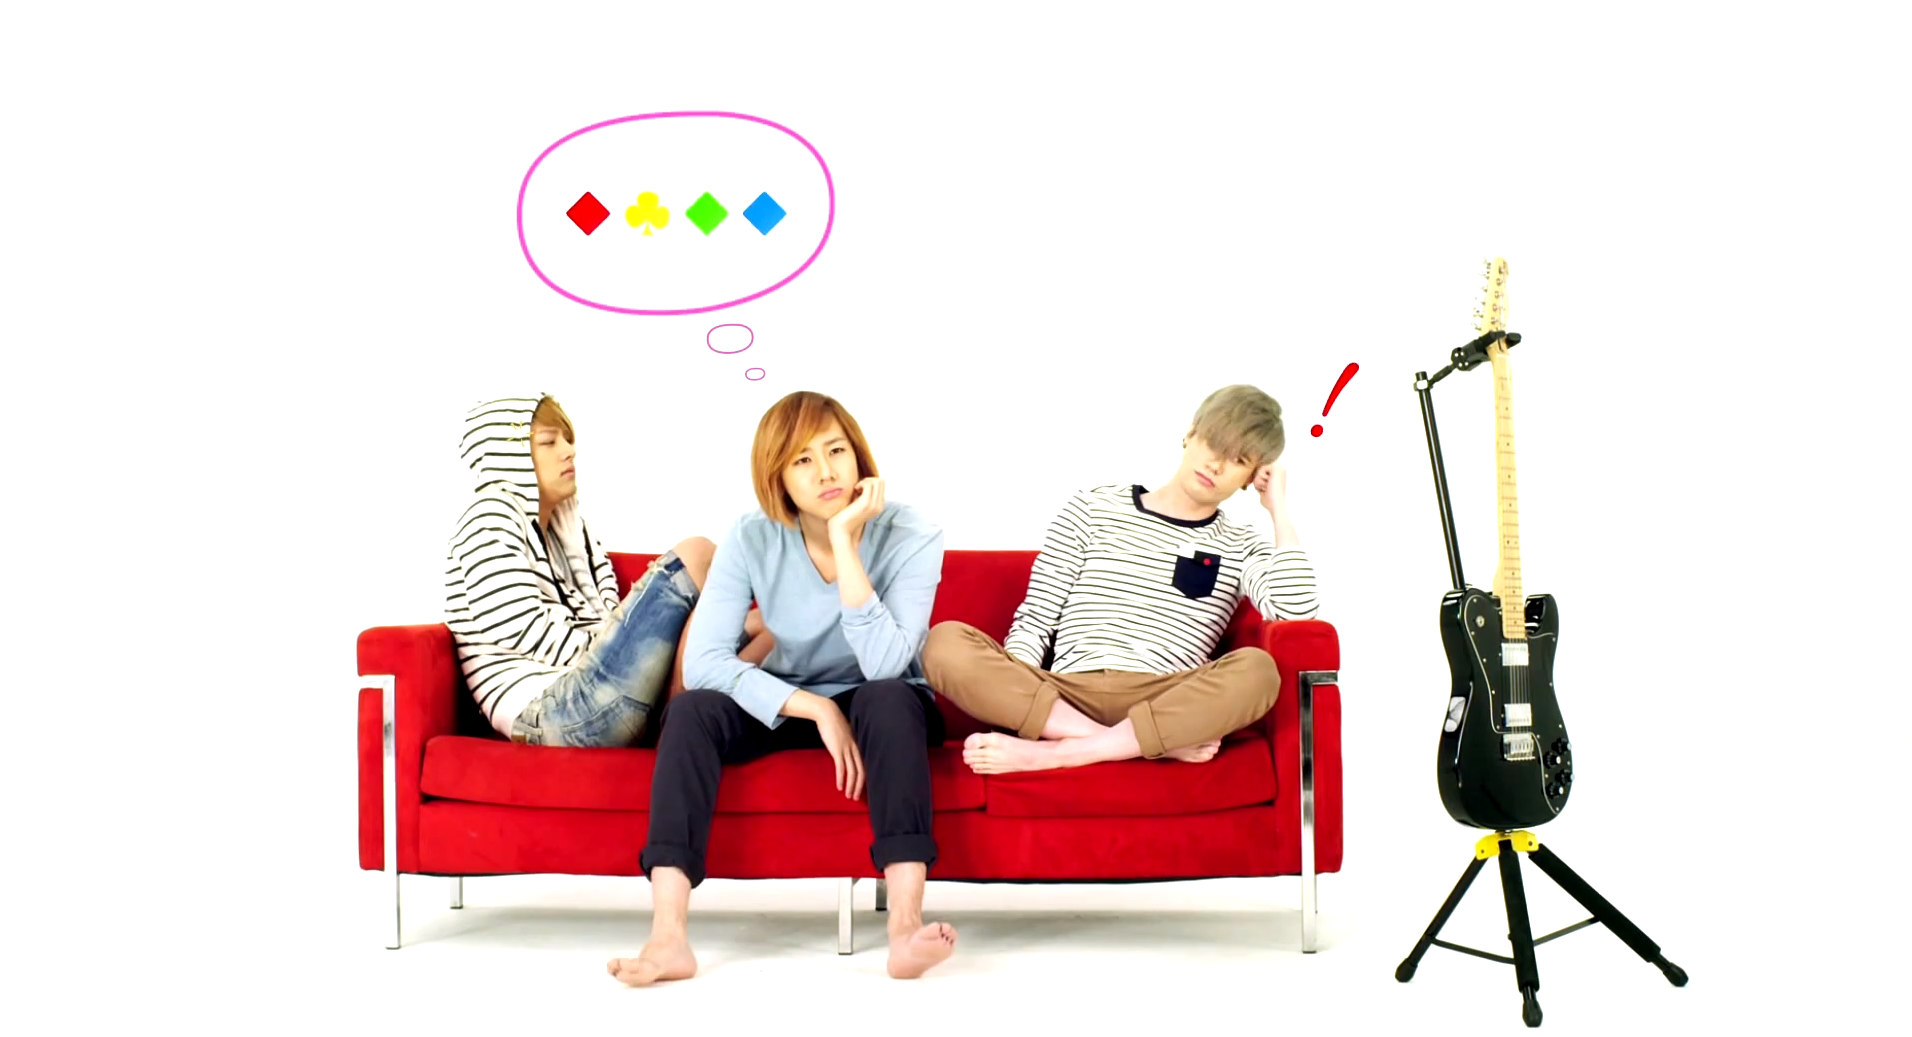 Lunafly Releases Cute and Colorful Video Teaser